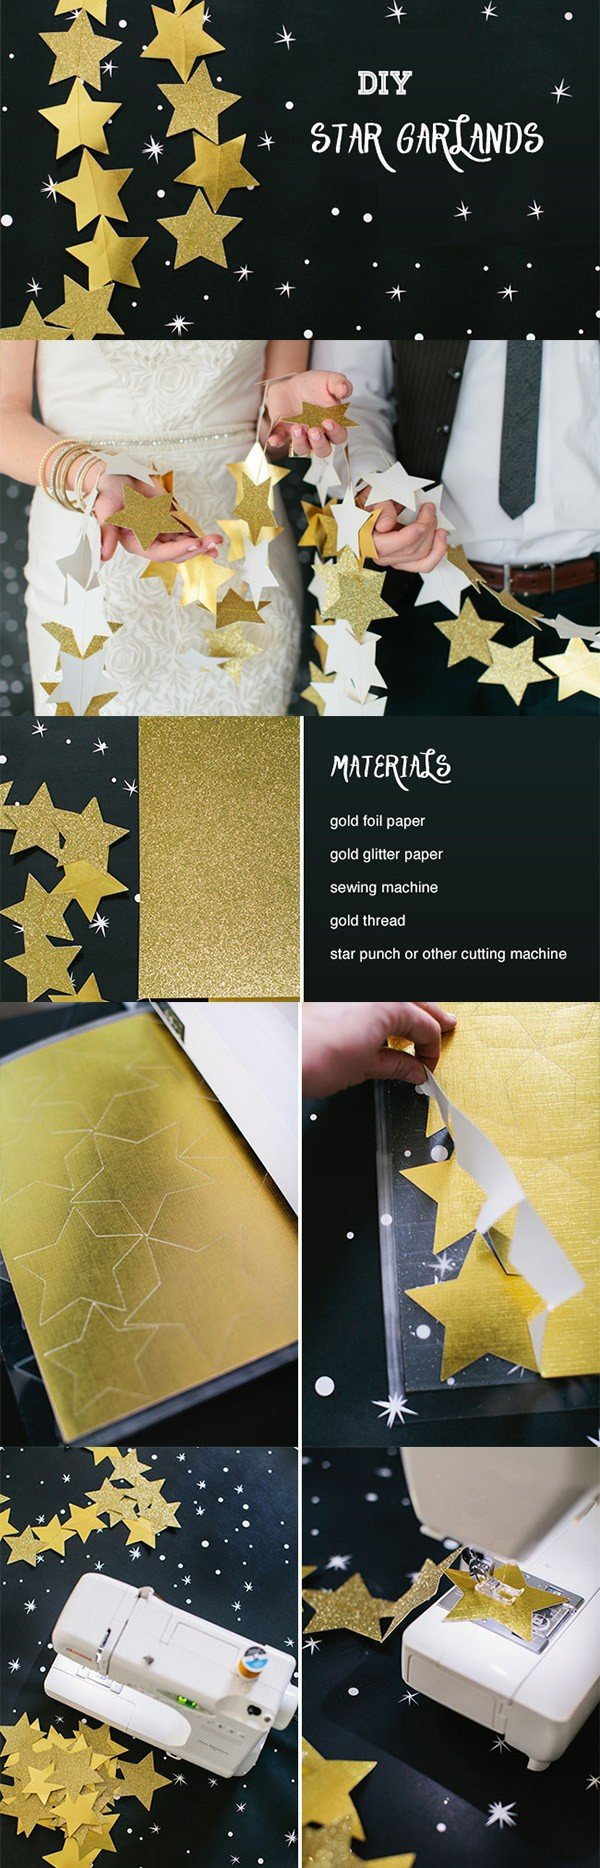 diy star garland wedding decoration ideas on a budget